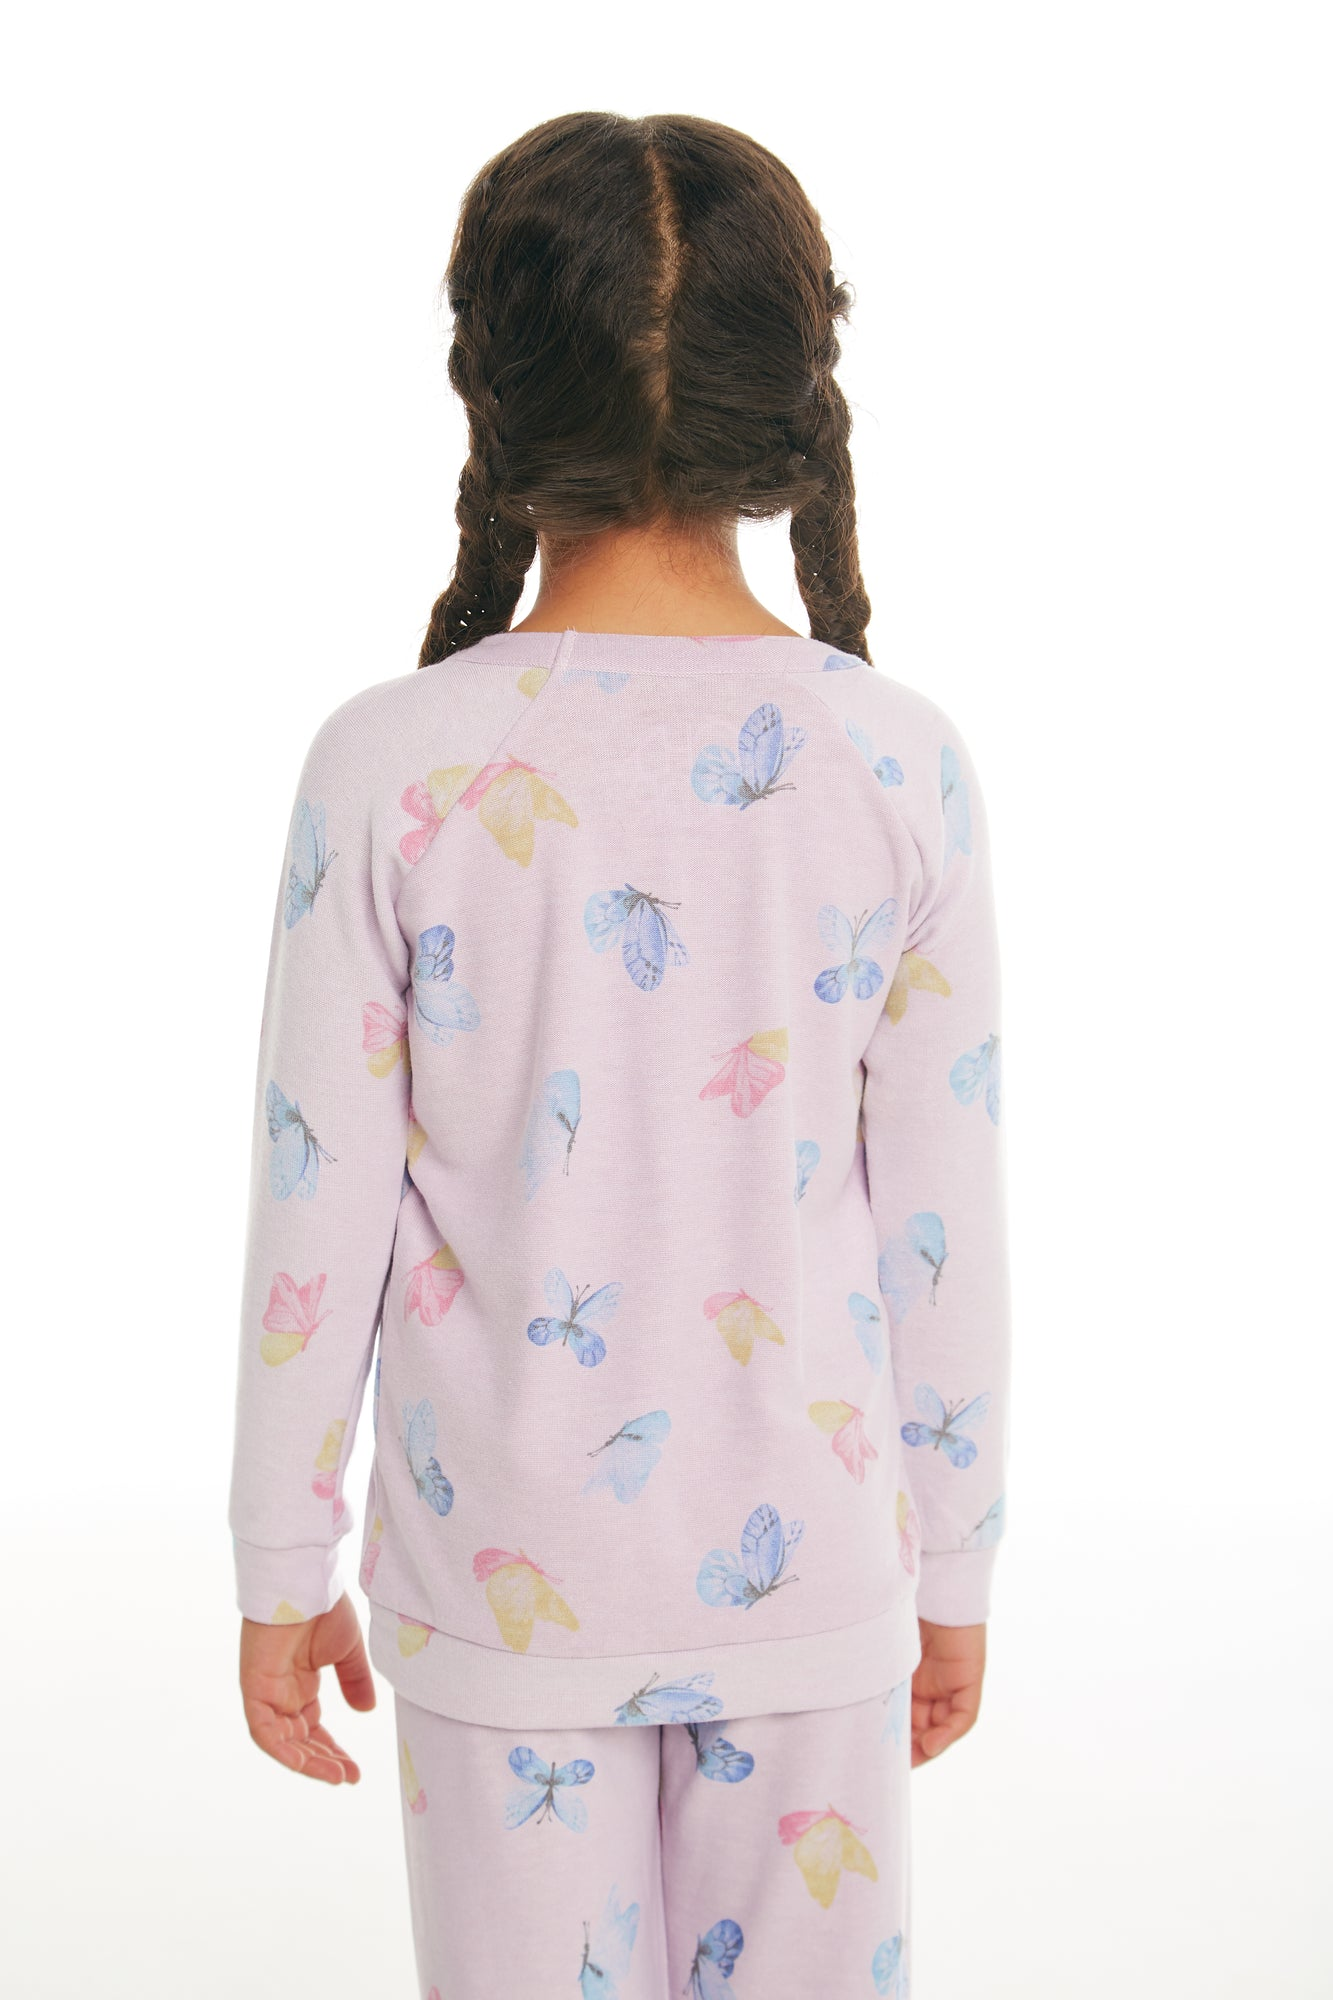 Butterfly Sweater - Lullaby's Boutique